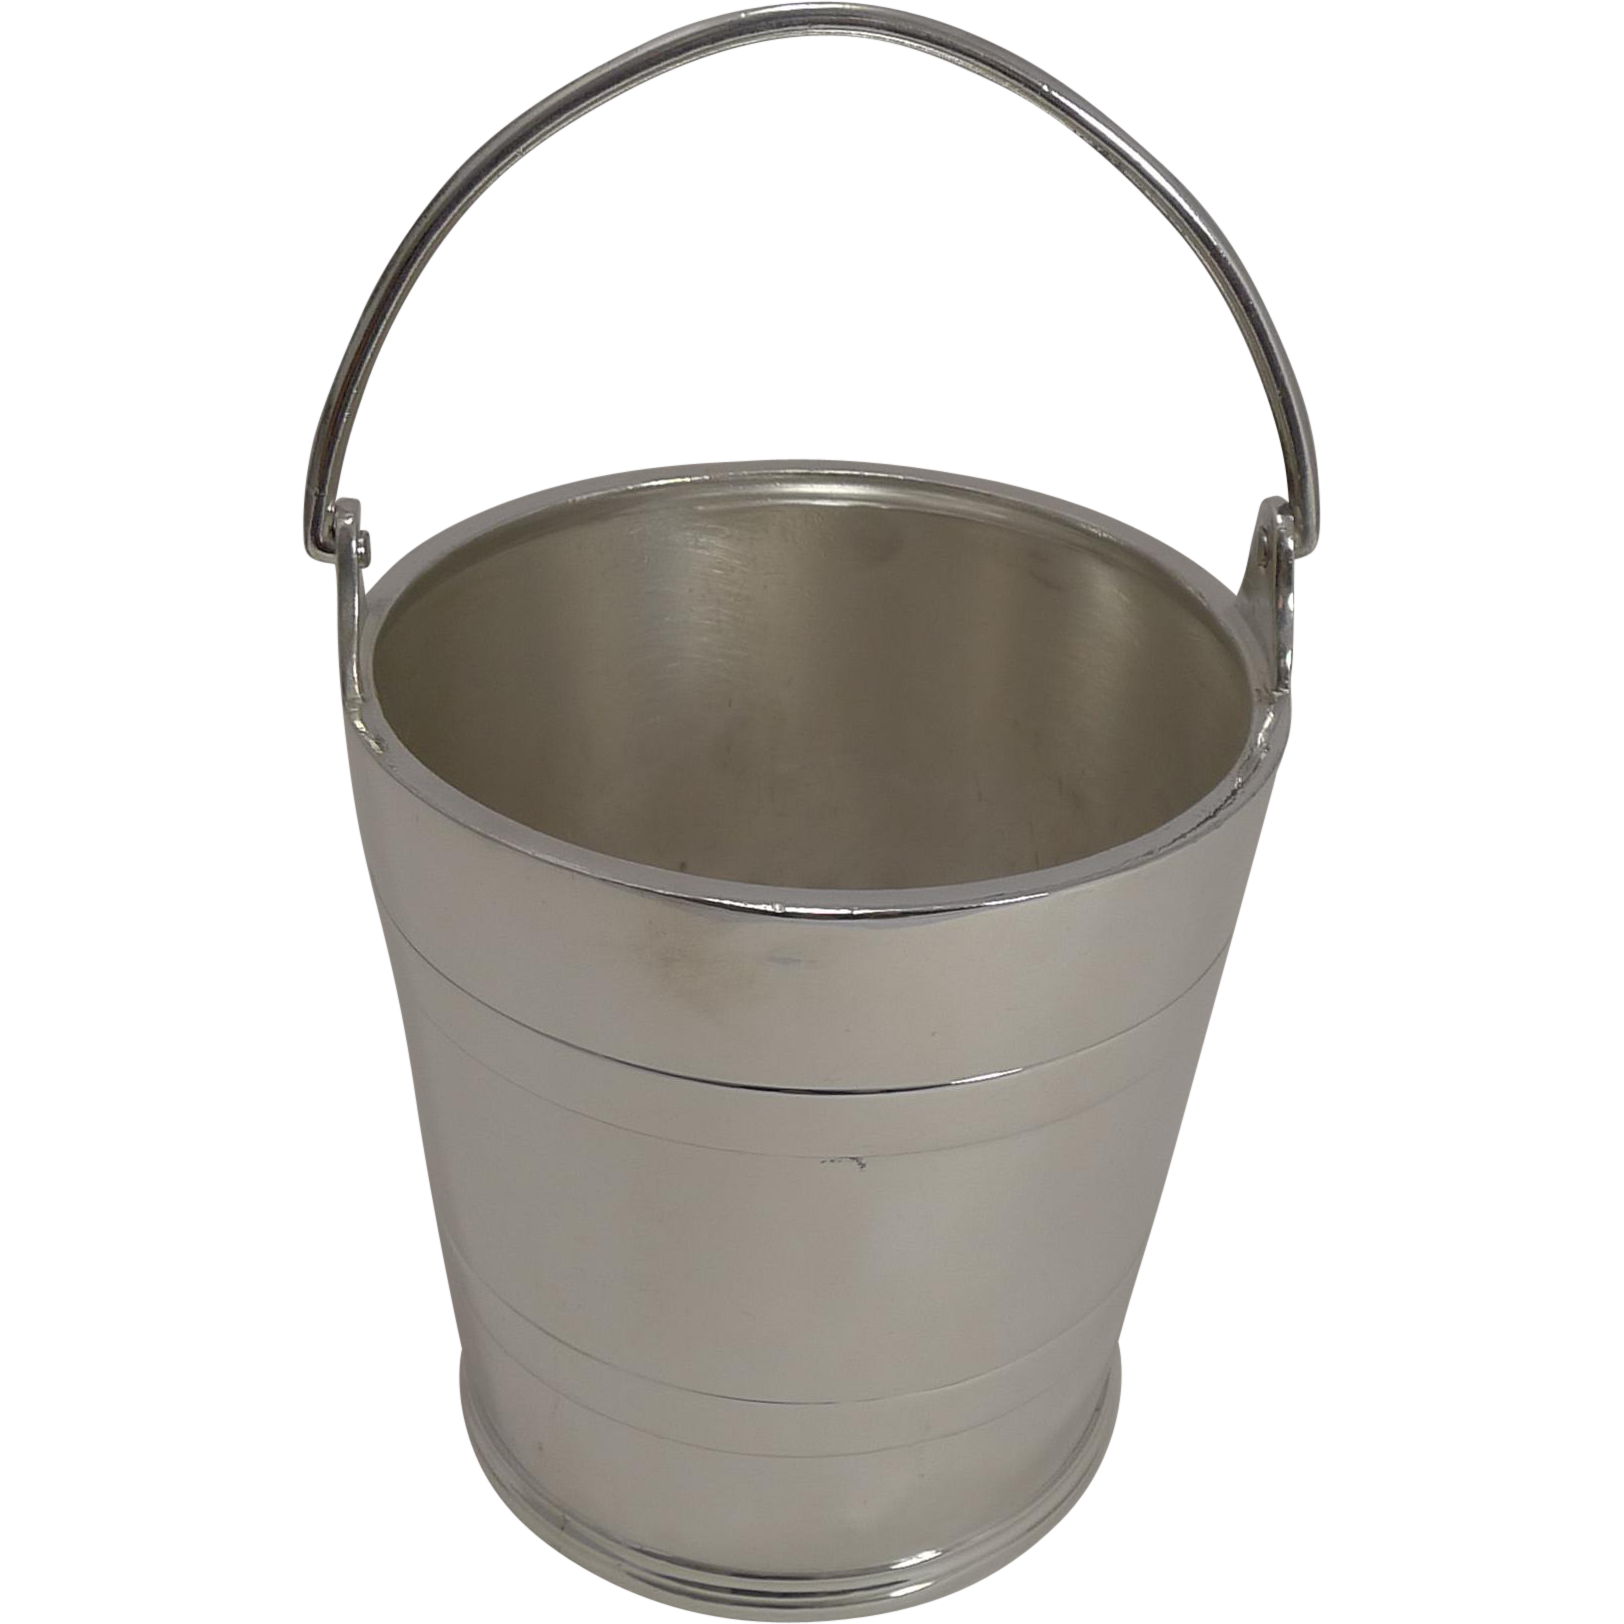 Vintage Silver Plated Ice Bucket by Elkington & Co. - 1938